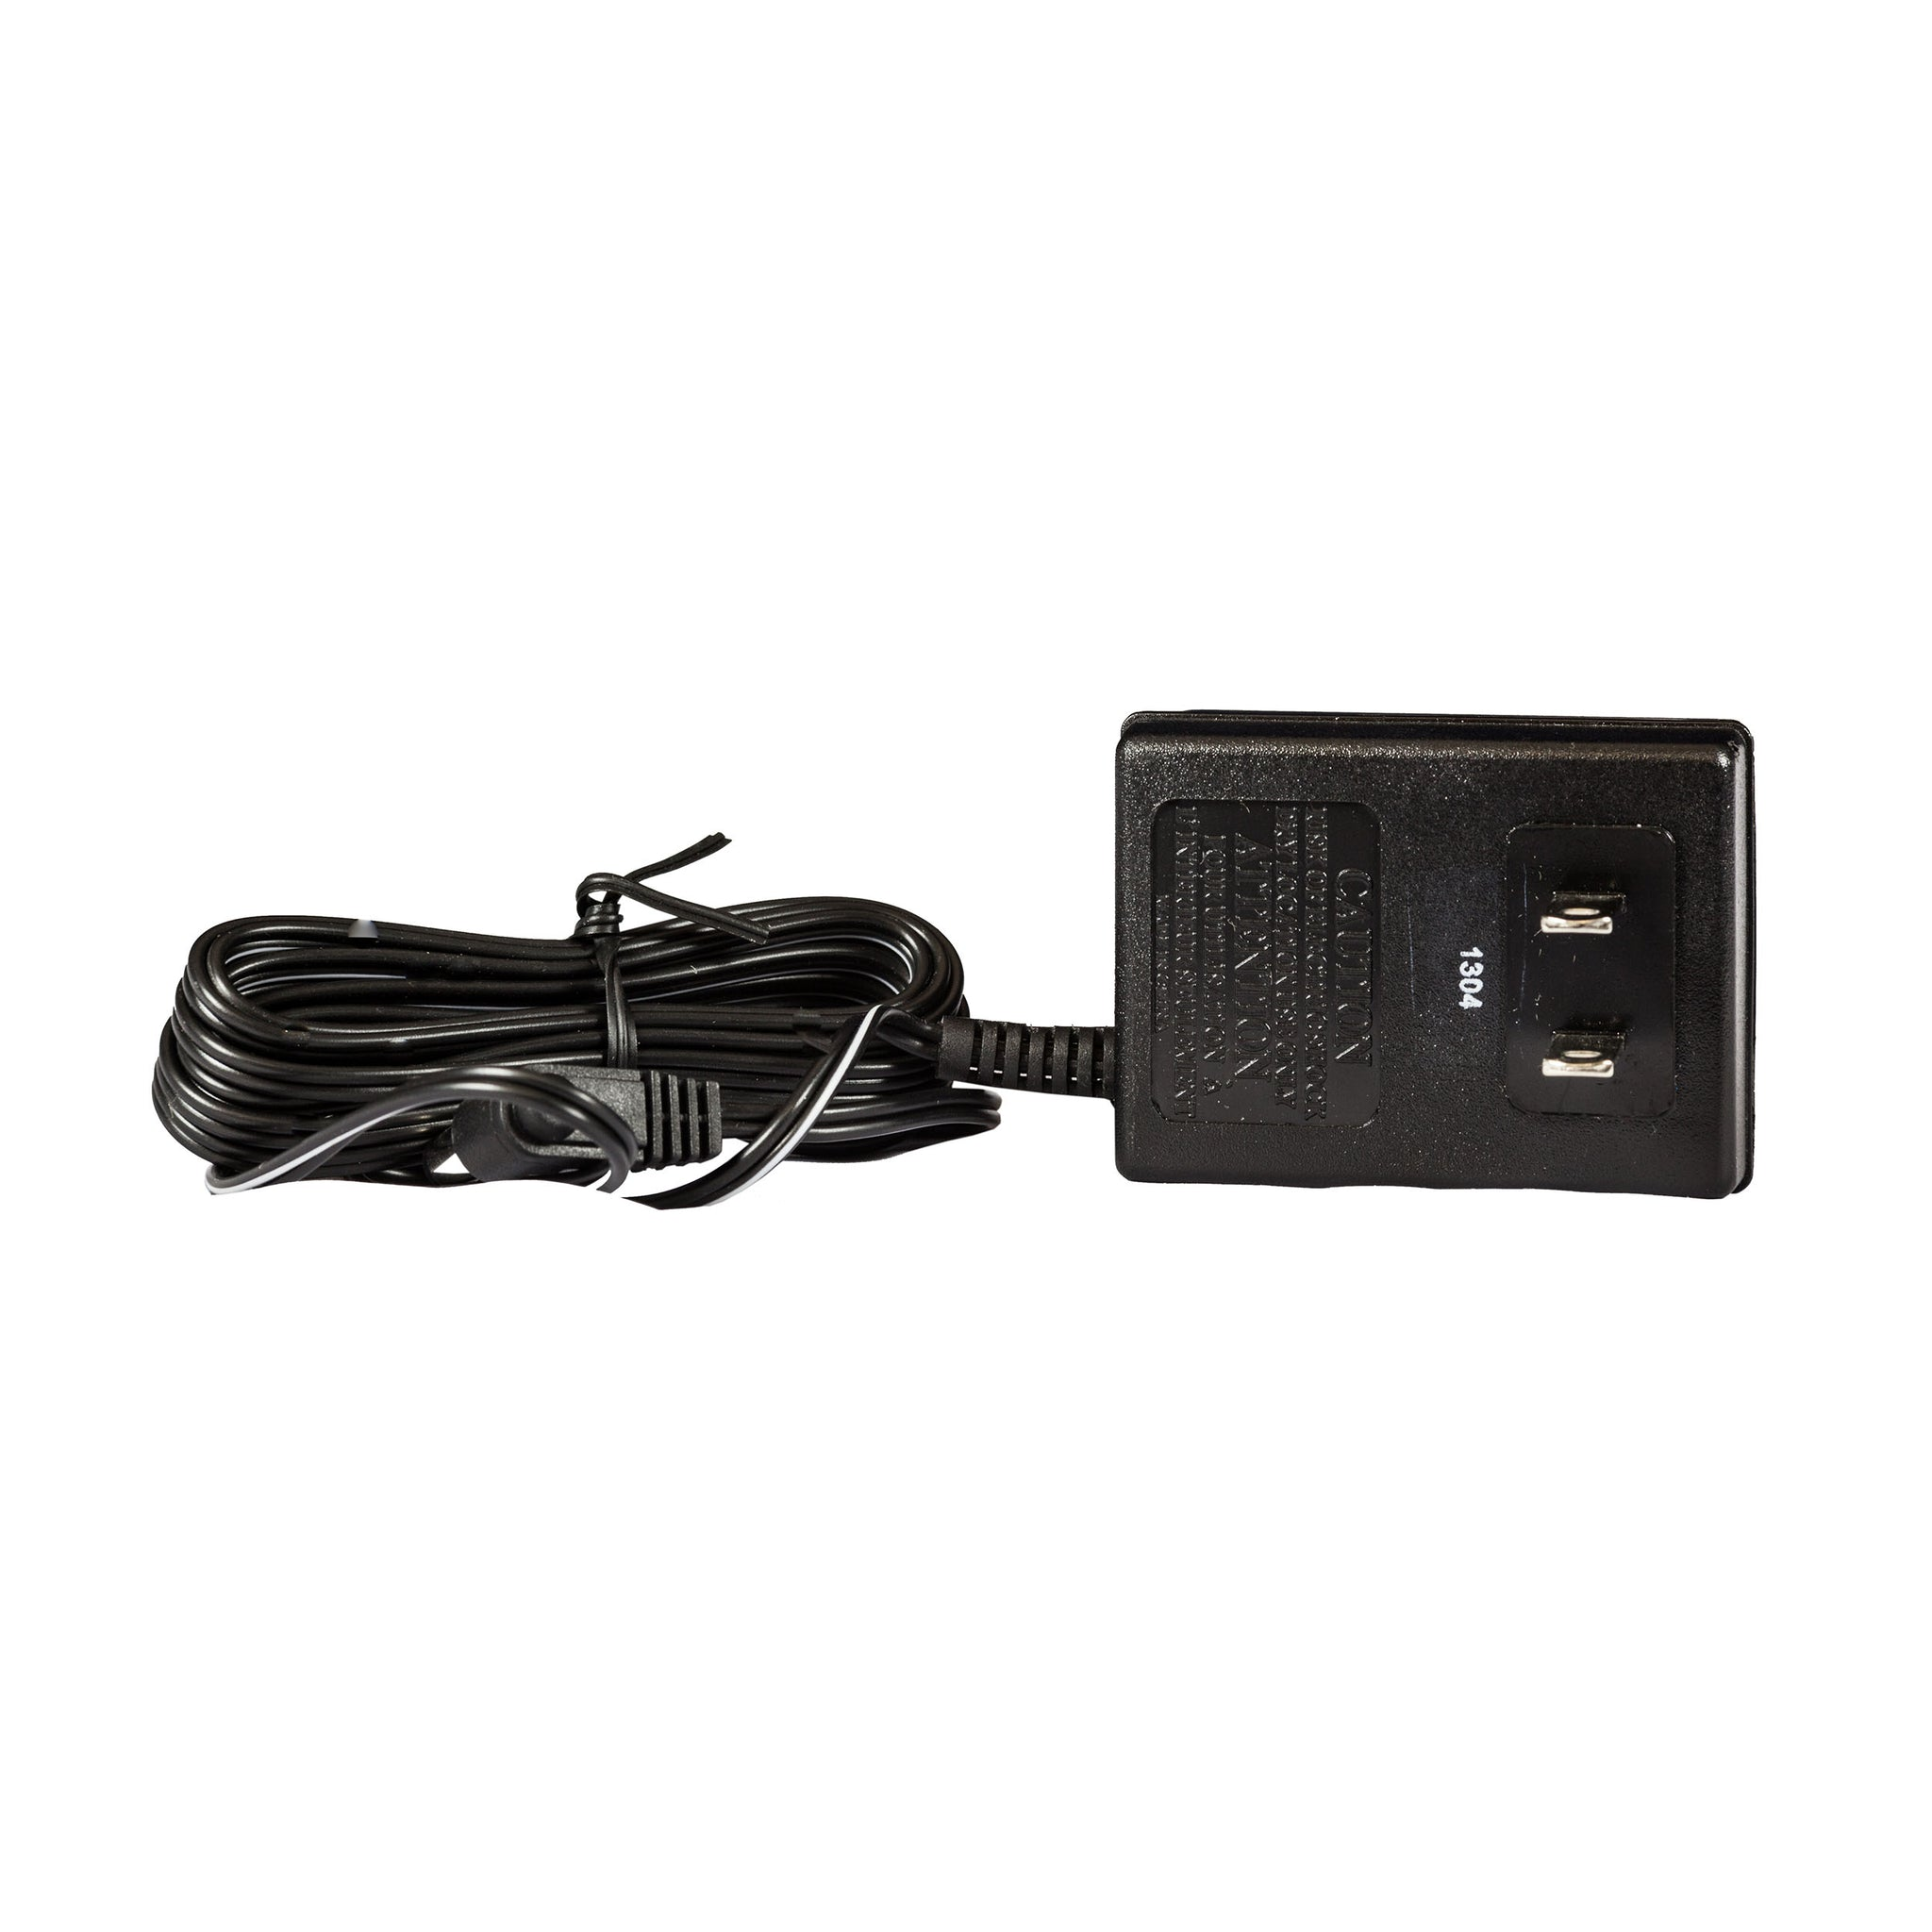 Smart Caregiver AC Adapter for TL-2100 Series Monitors